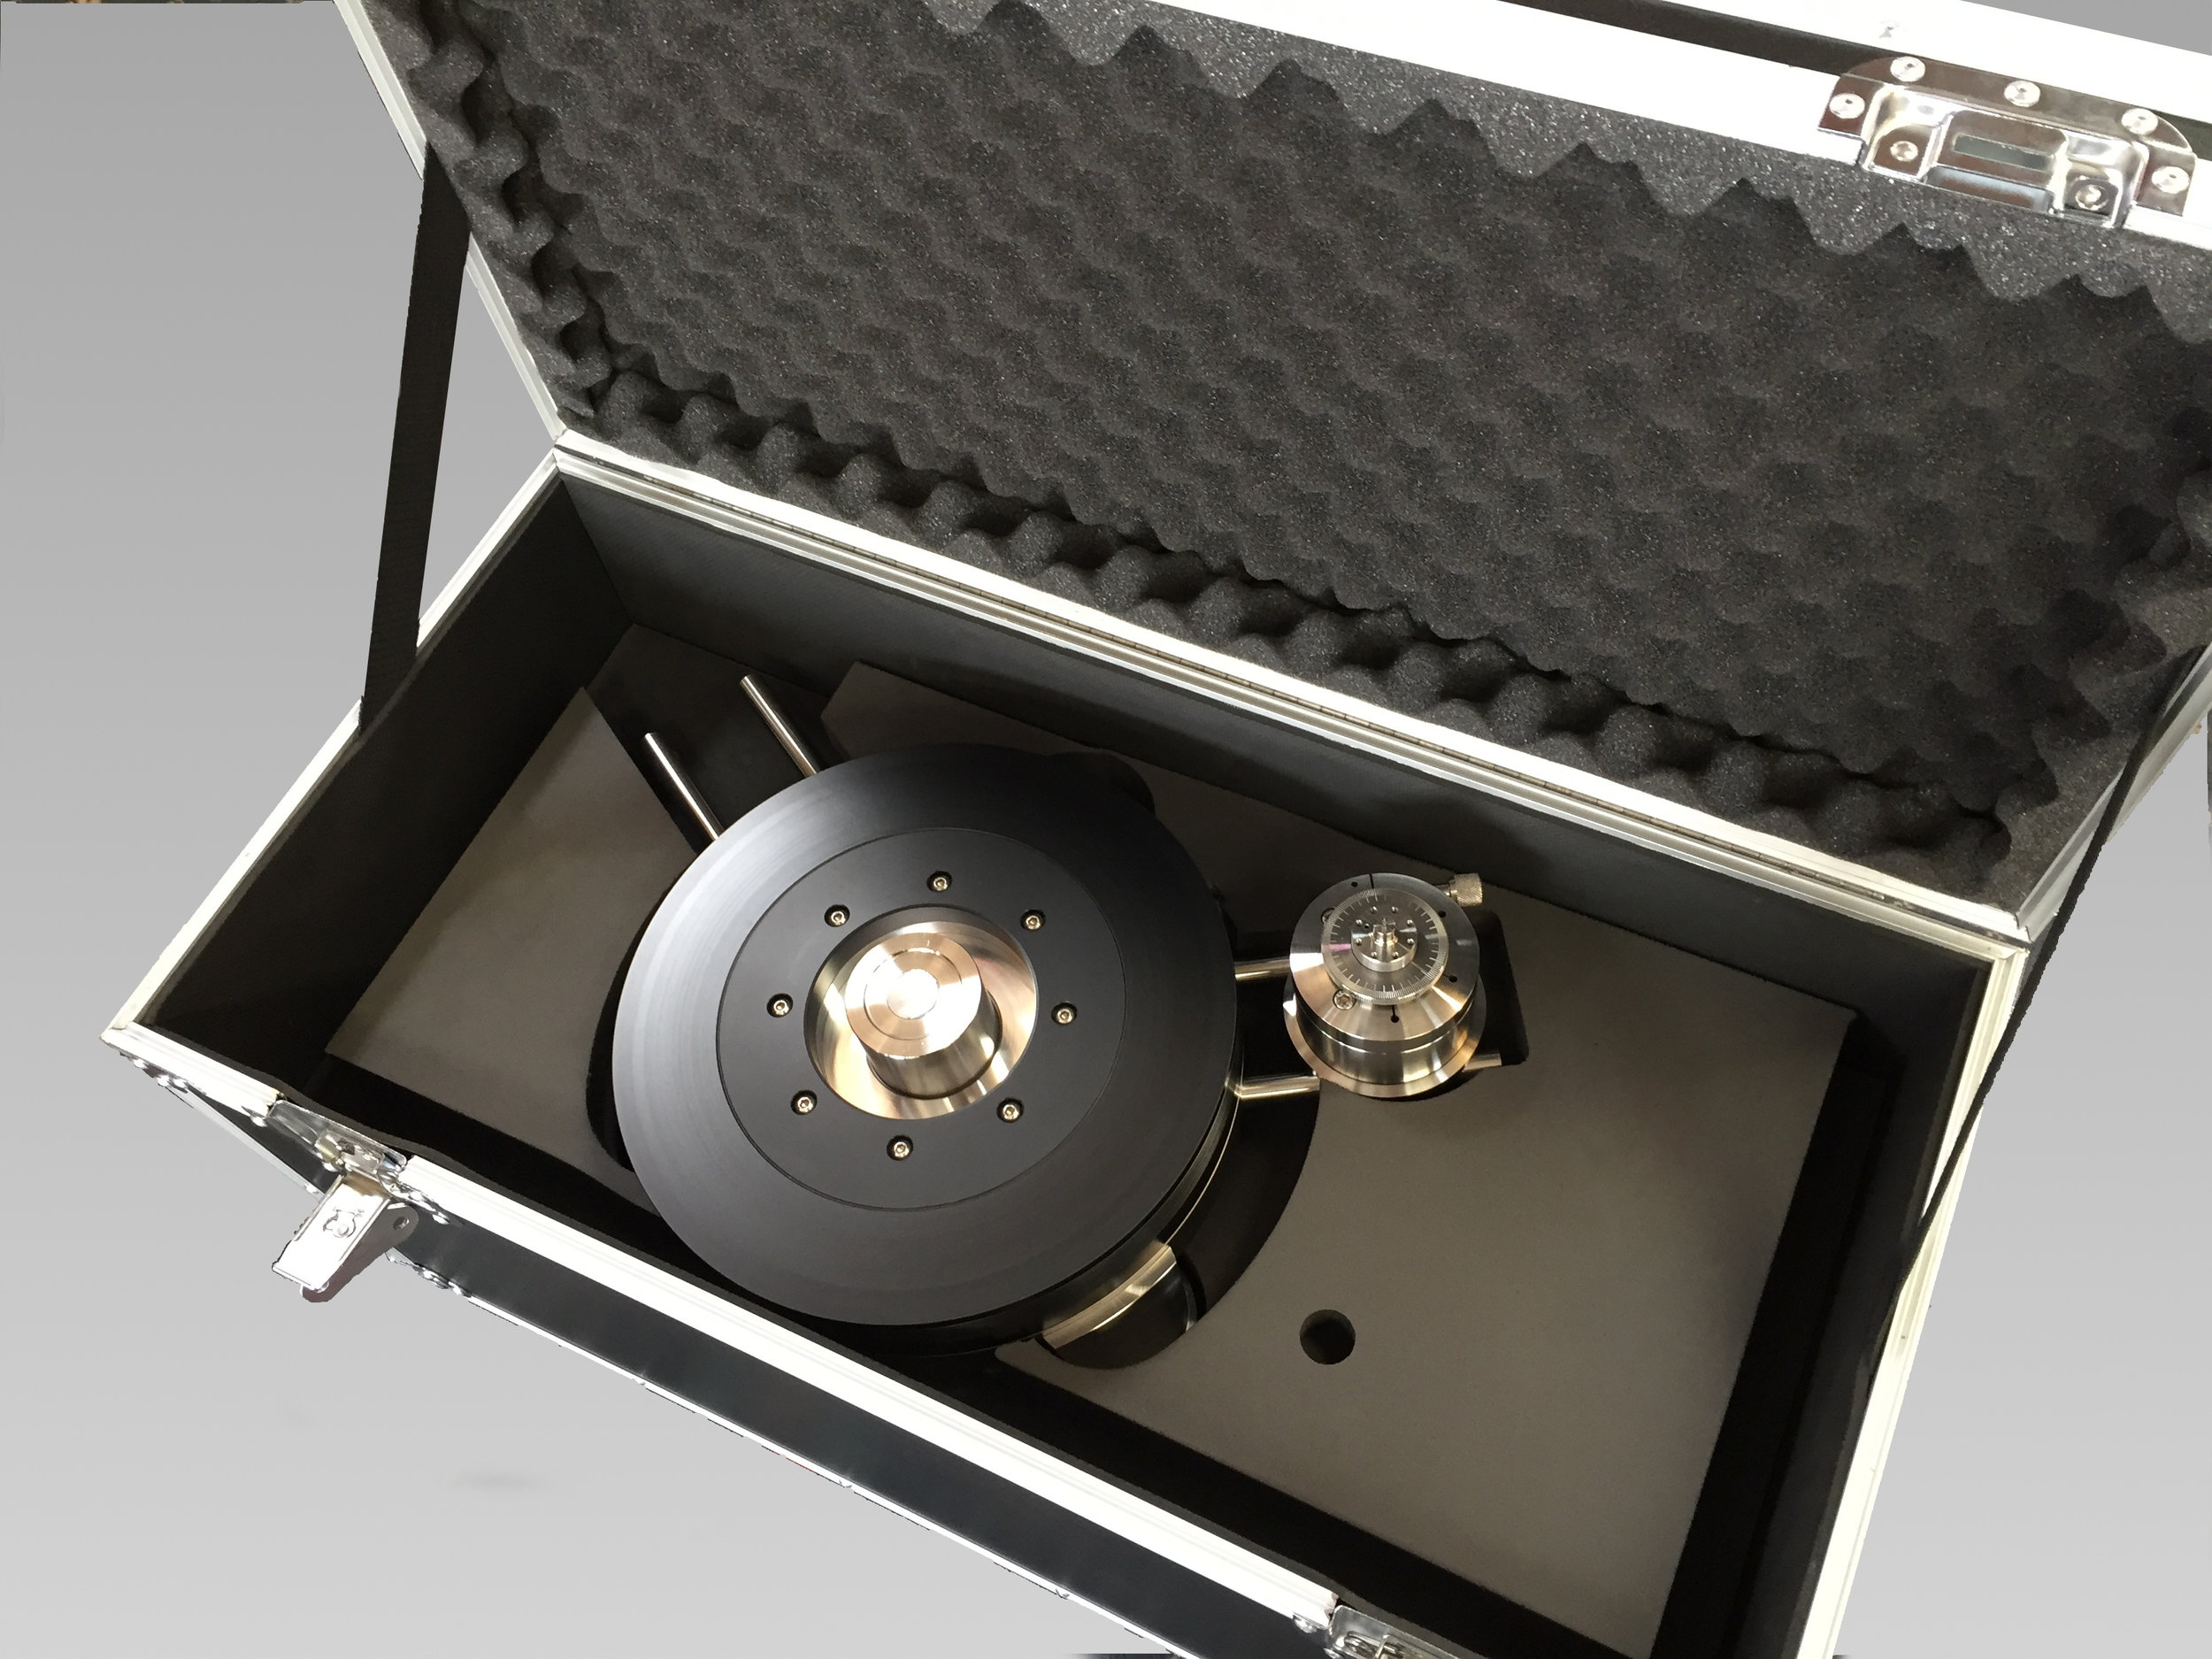 FLEXIBLE FOAM PACKAGING - This custom made case was created using flexible foam to perfectly fit and protect the Continuum Obsidian Turntable.